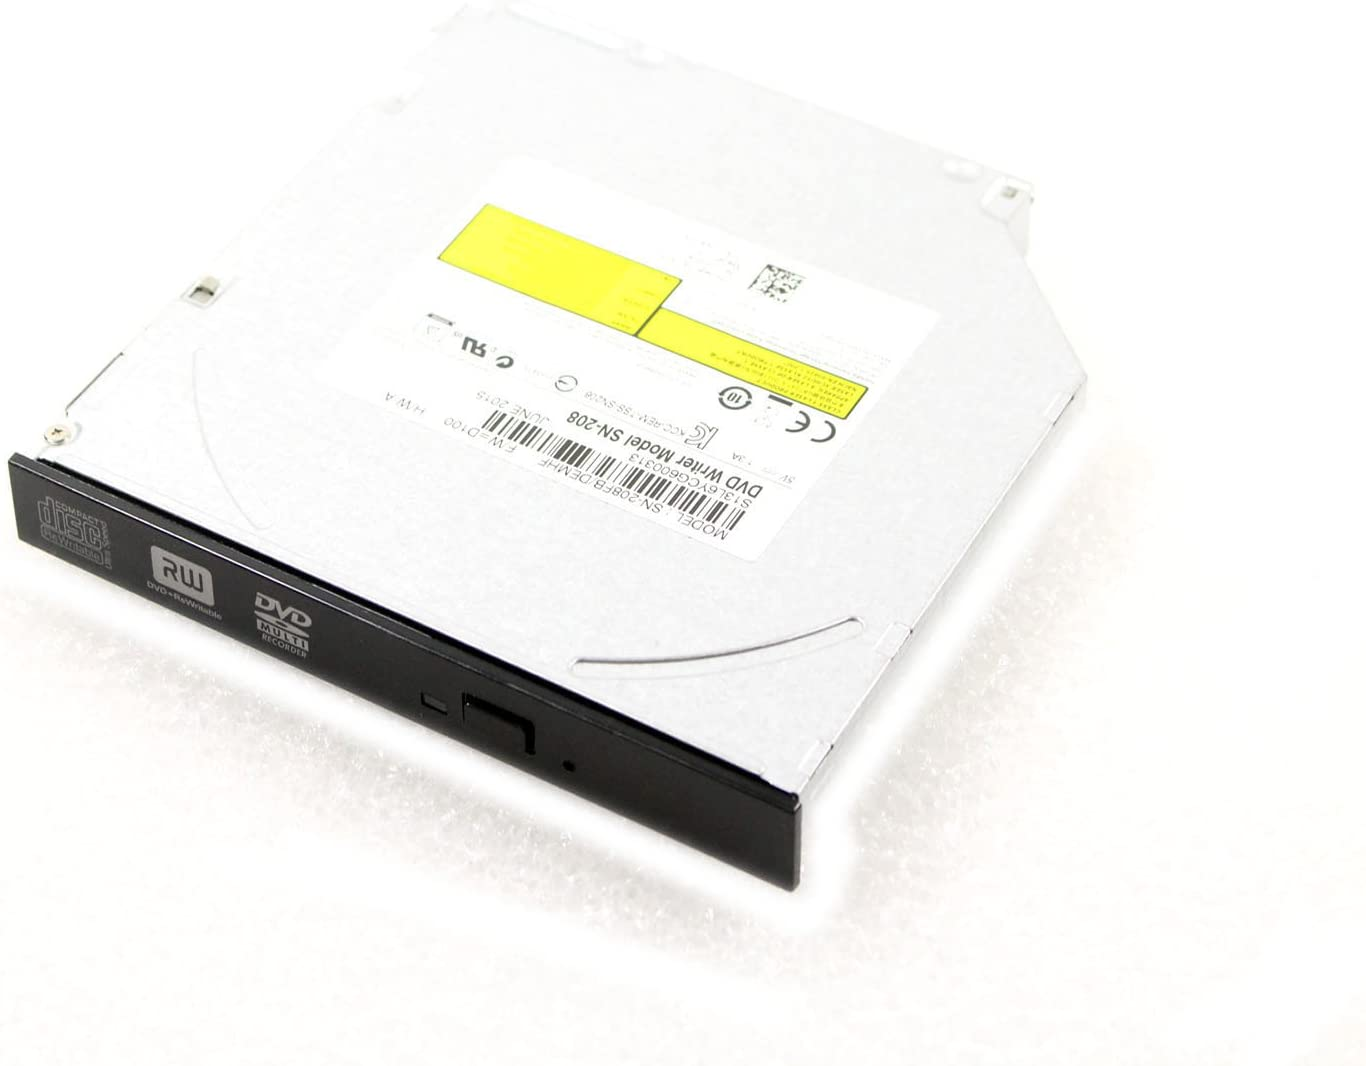 DELL 48CF4 Optical Disc Drive - DVD-RW Rewritable - Slim-line - Optical disc drive for Laptop